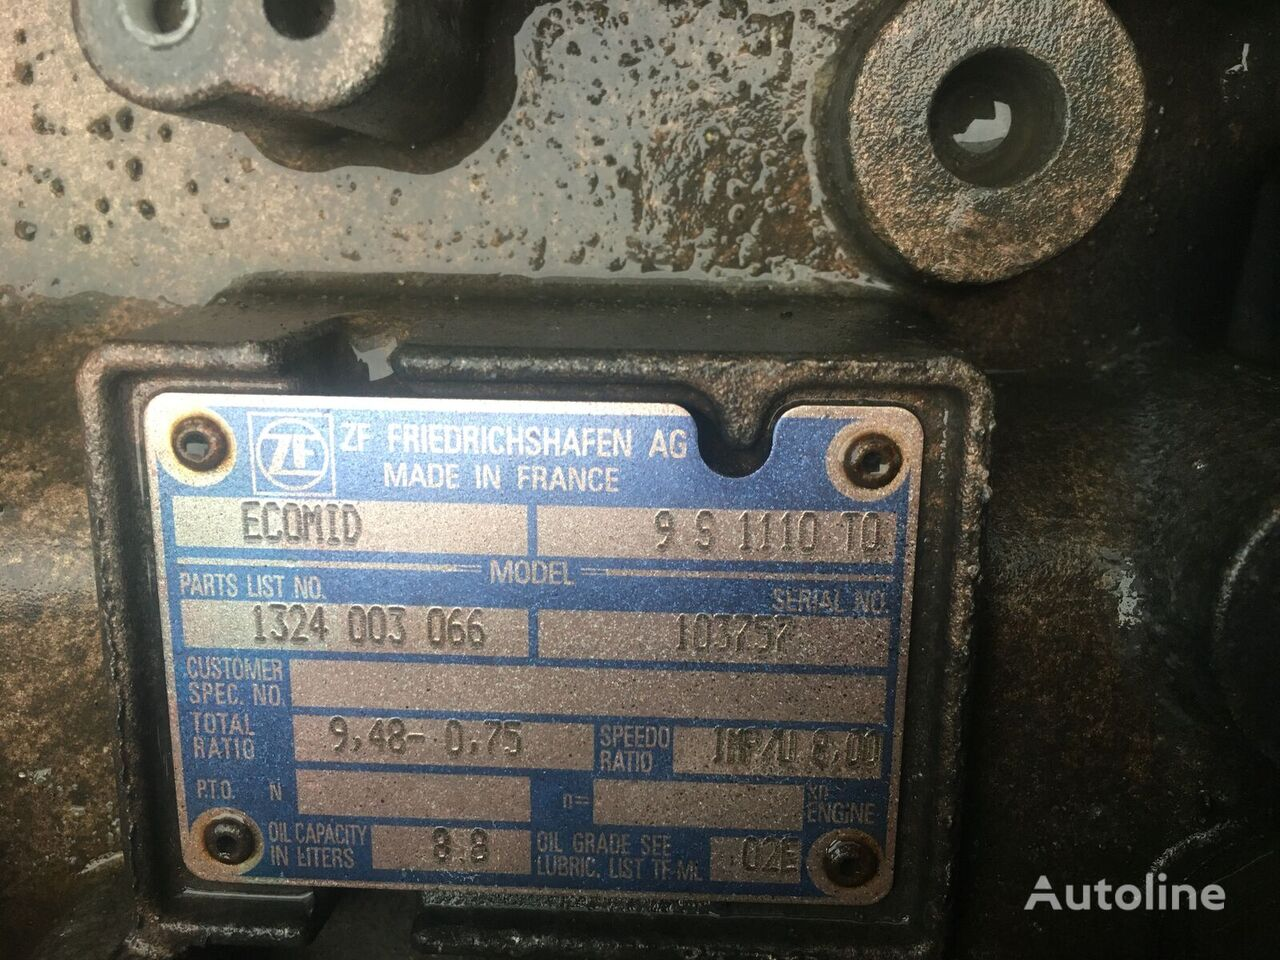 ZF Ecomid 9D1110 TO gearbox for tractor unit